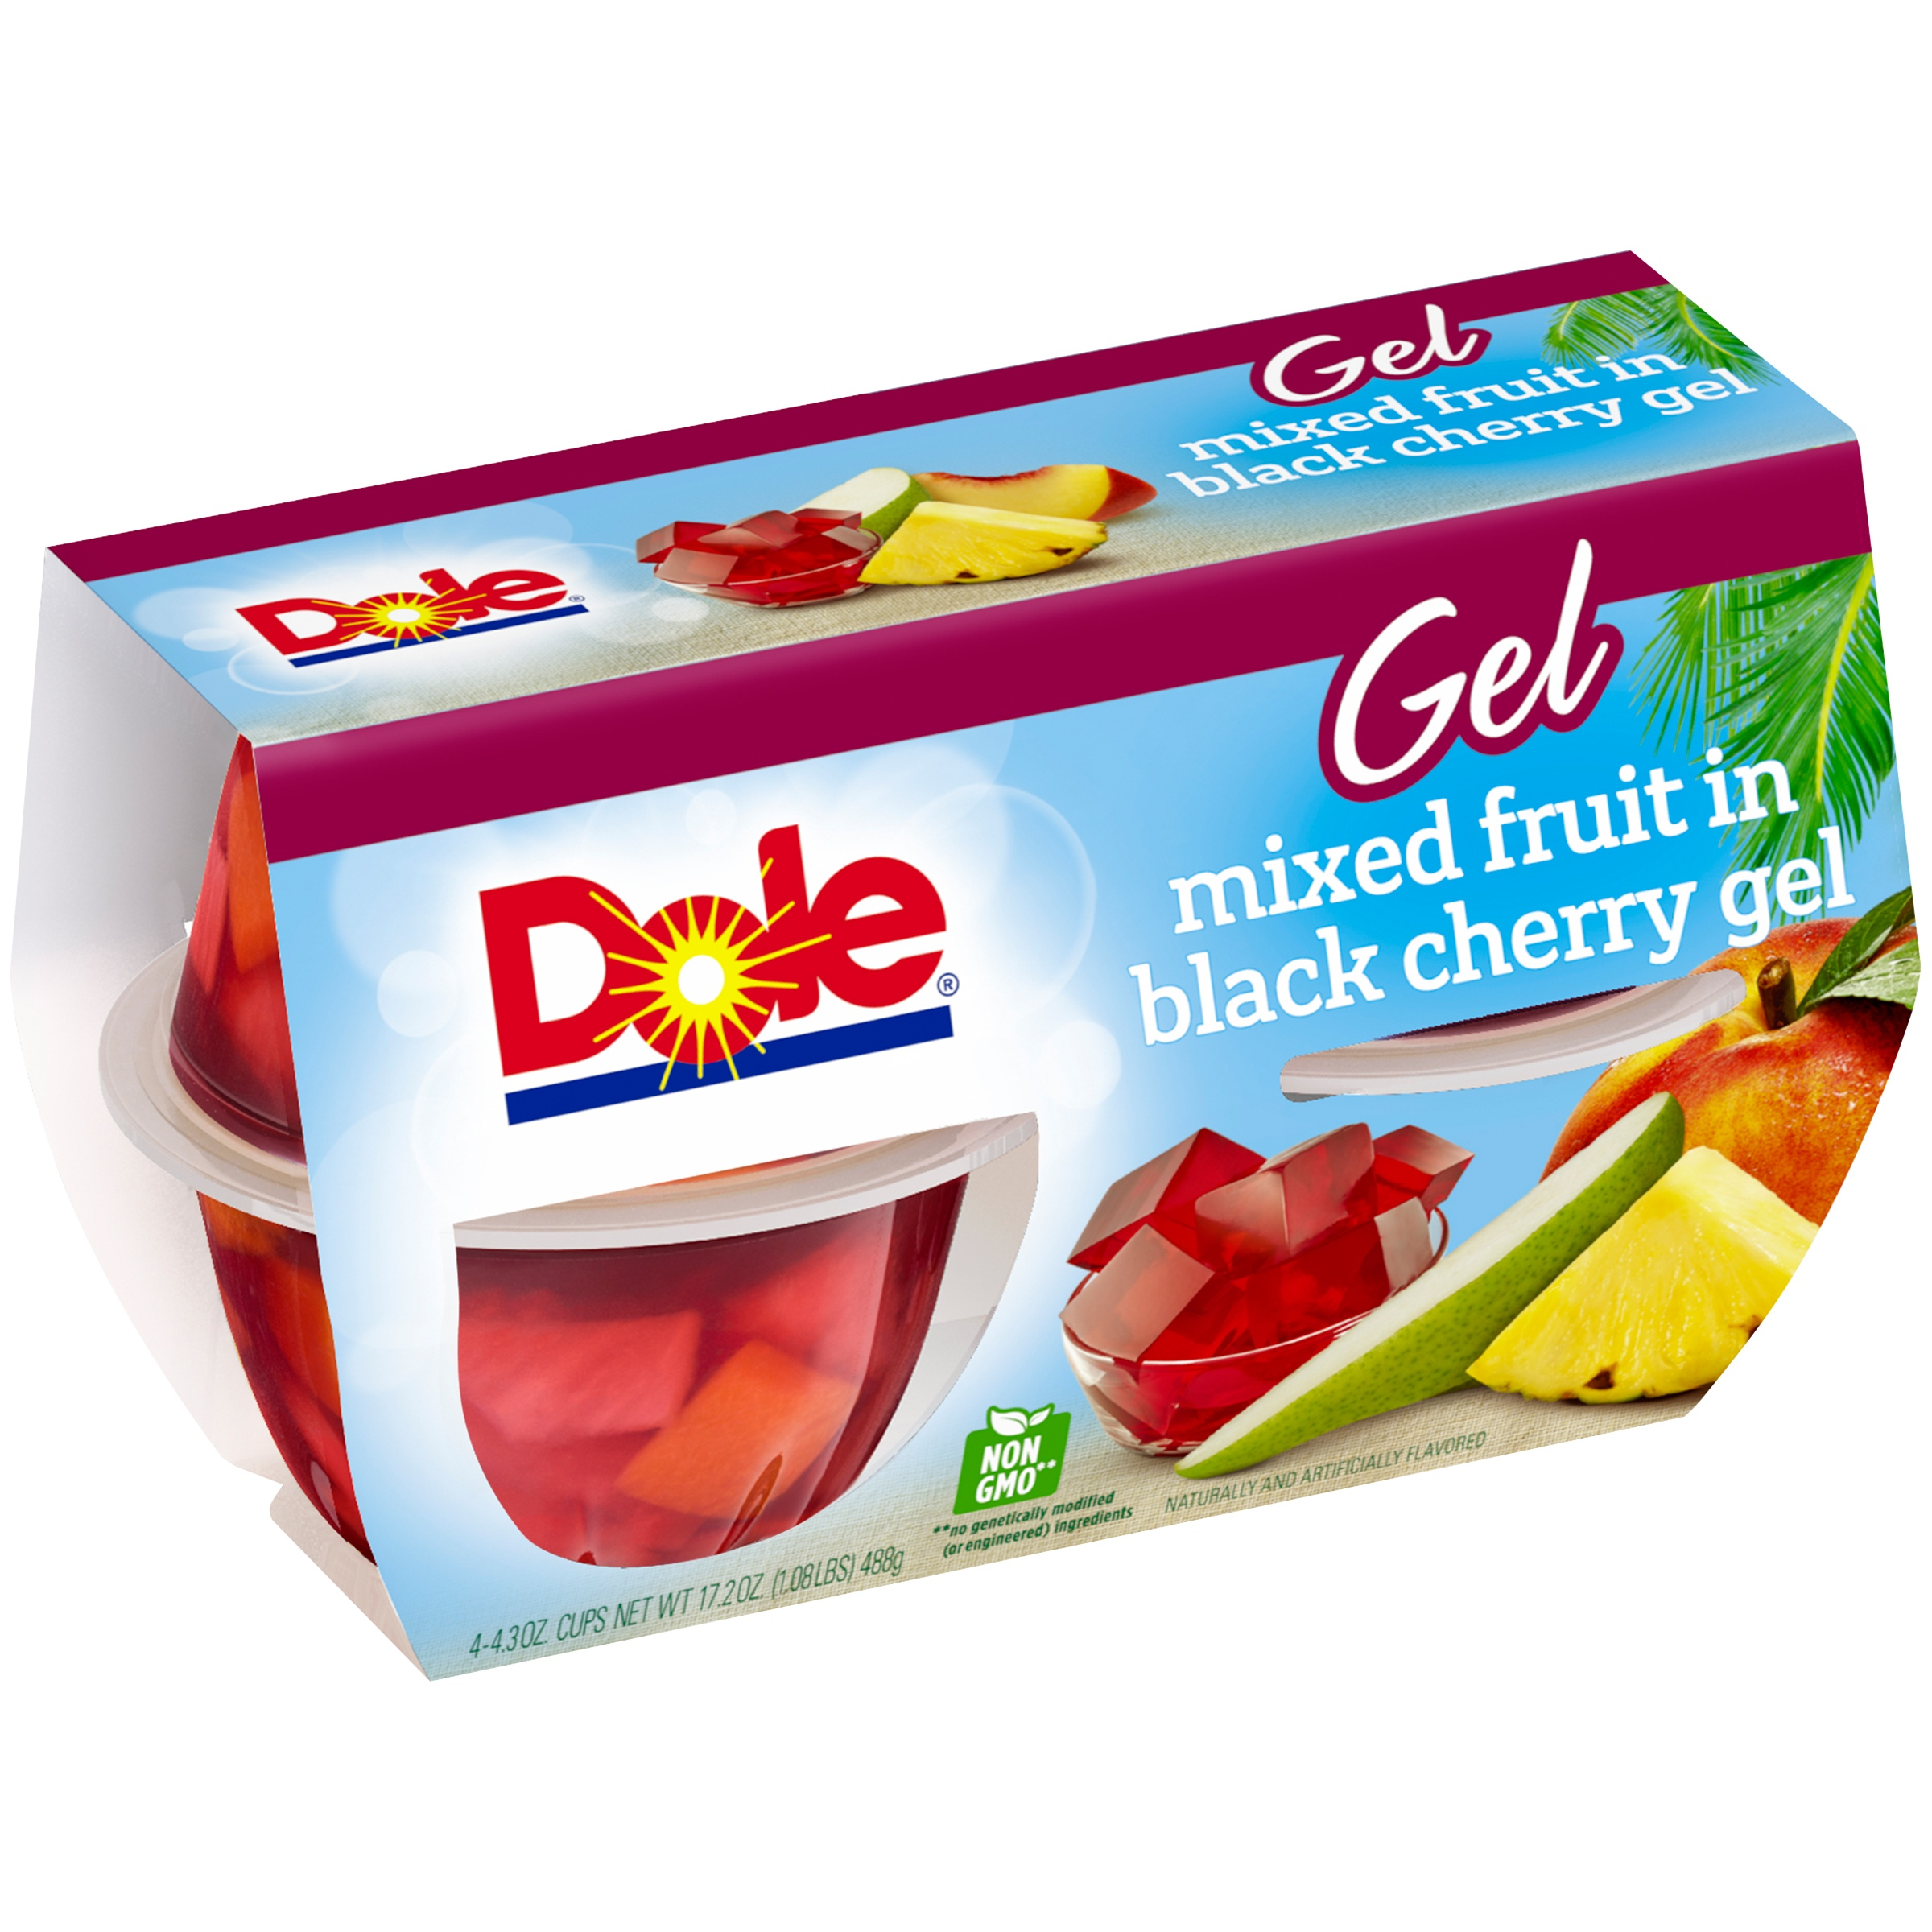 Dole�� Mixed Fruit in Black Cherry Gel 4-4.3 oz. Cups